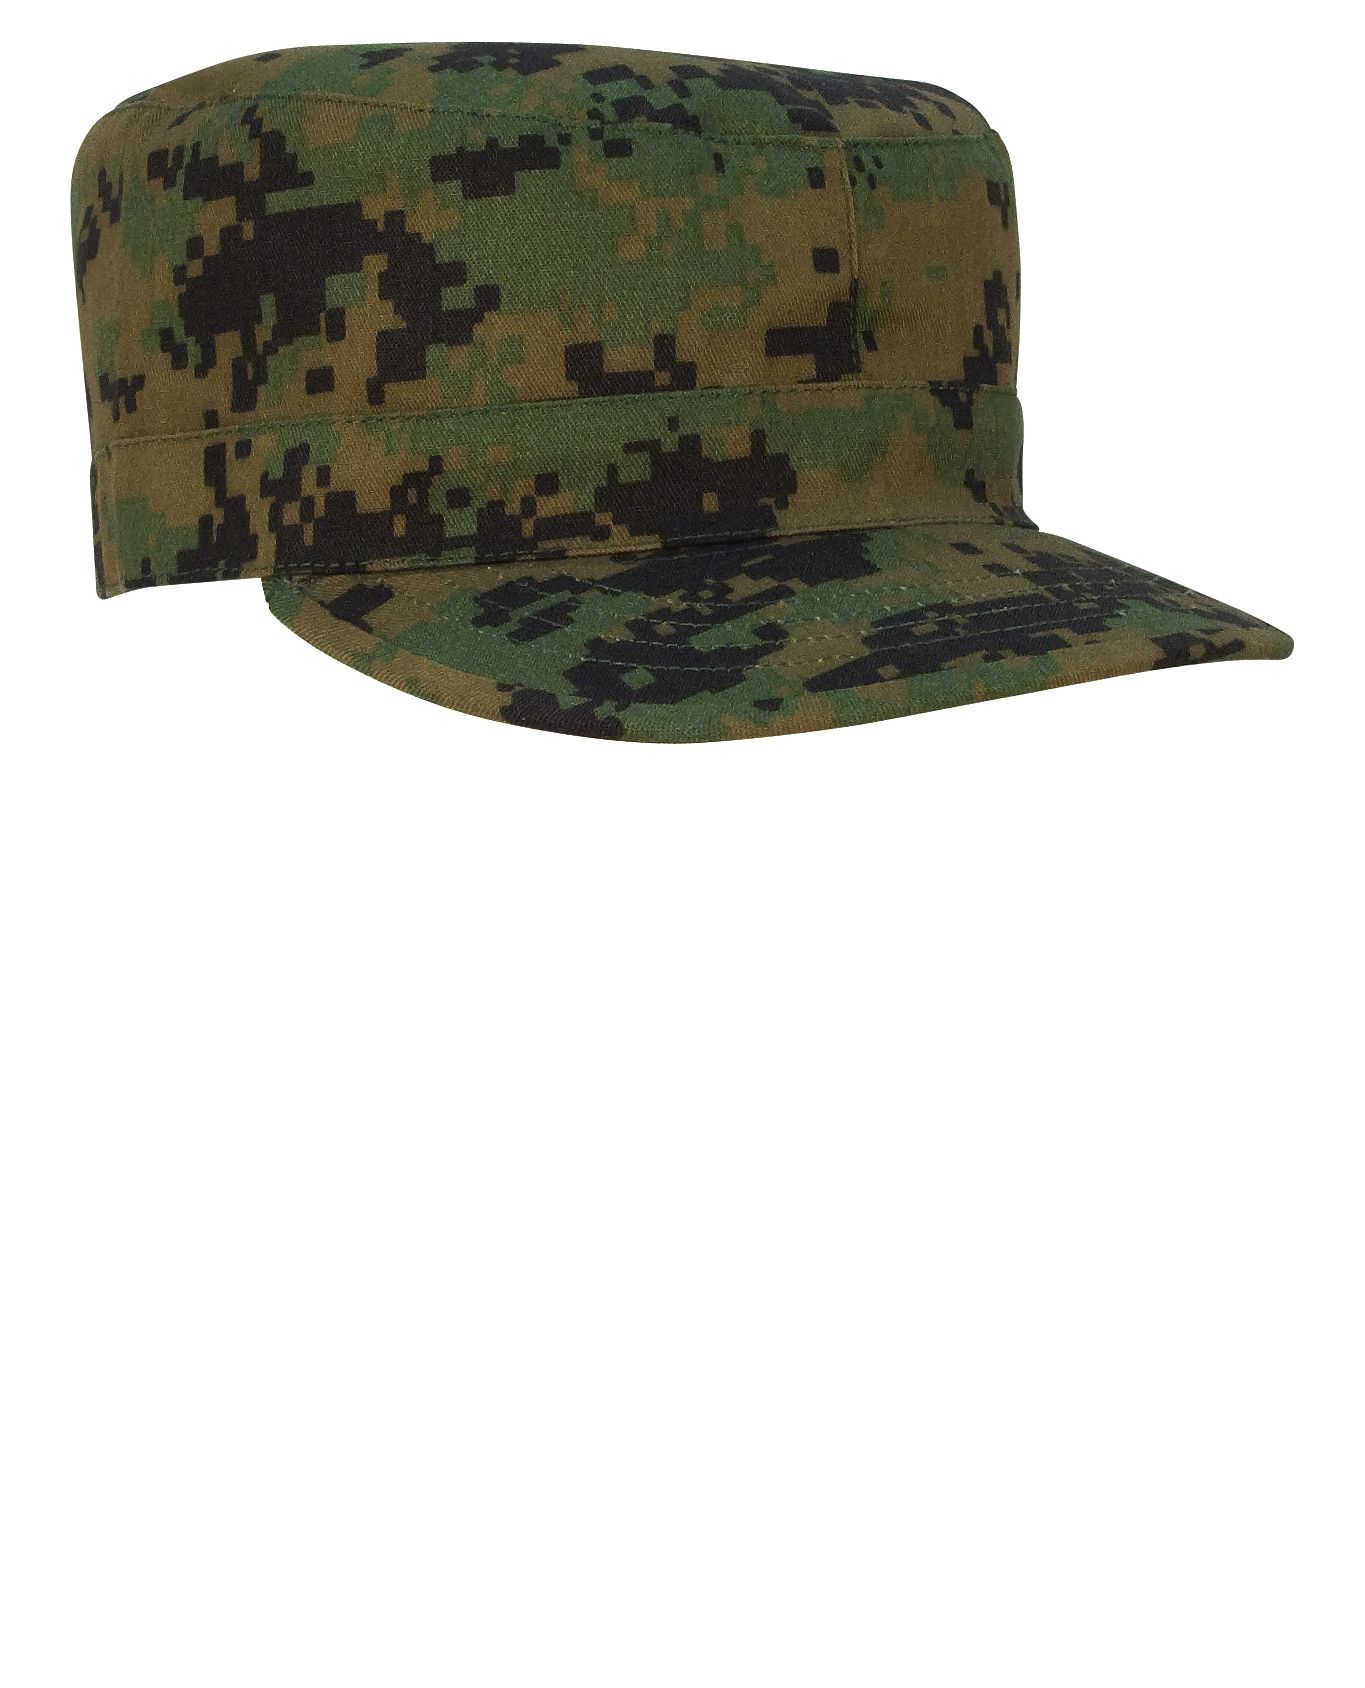 6364f88bc6c Buy Rothco Camo Fatigue Caps - Rothco Online at Best price - VA